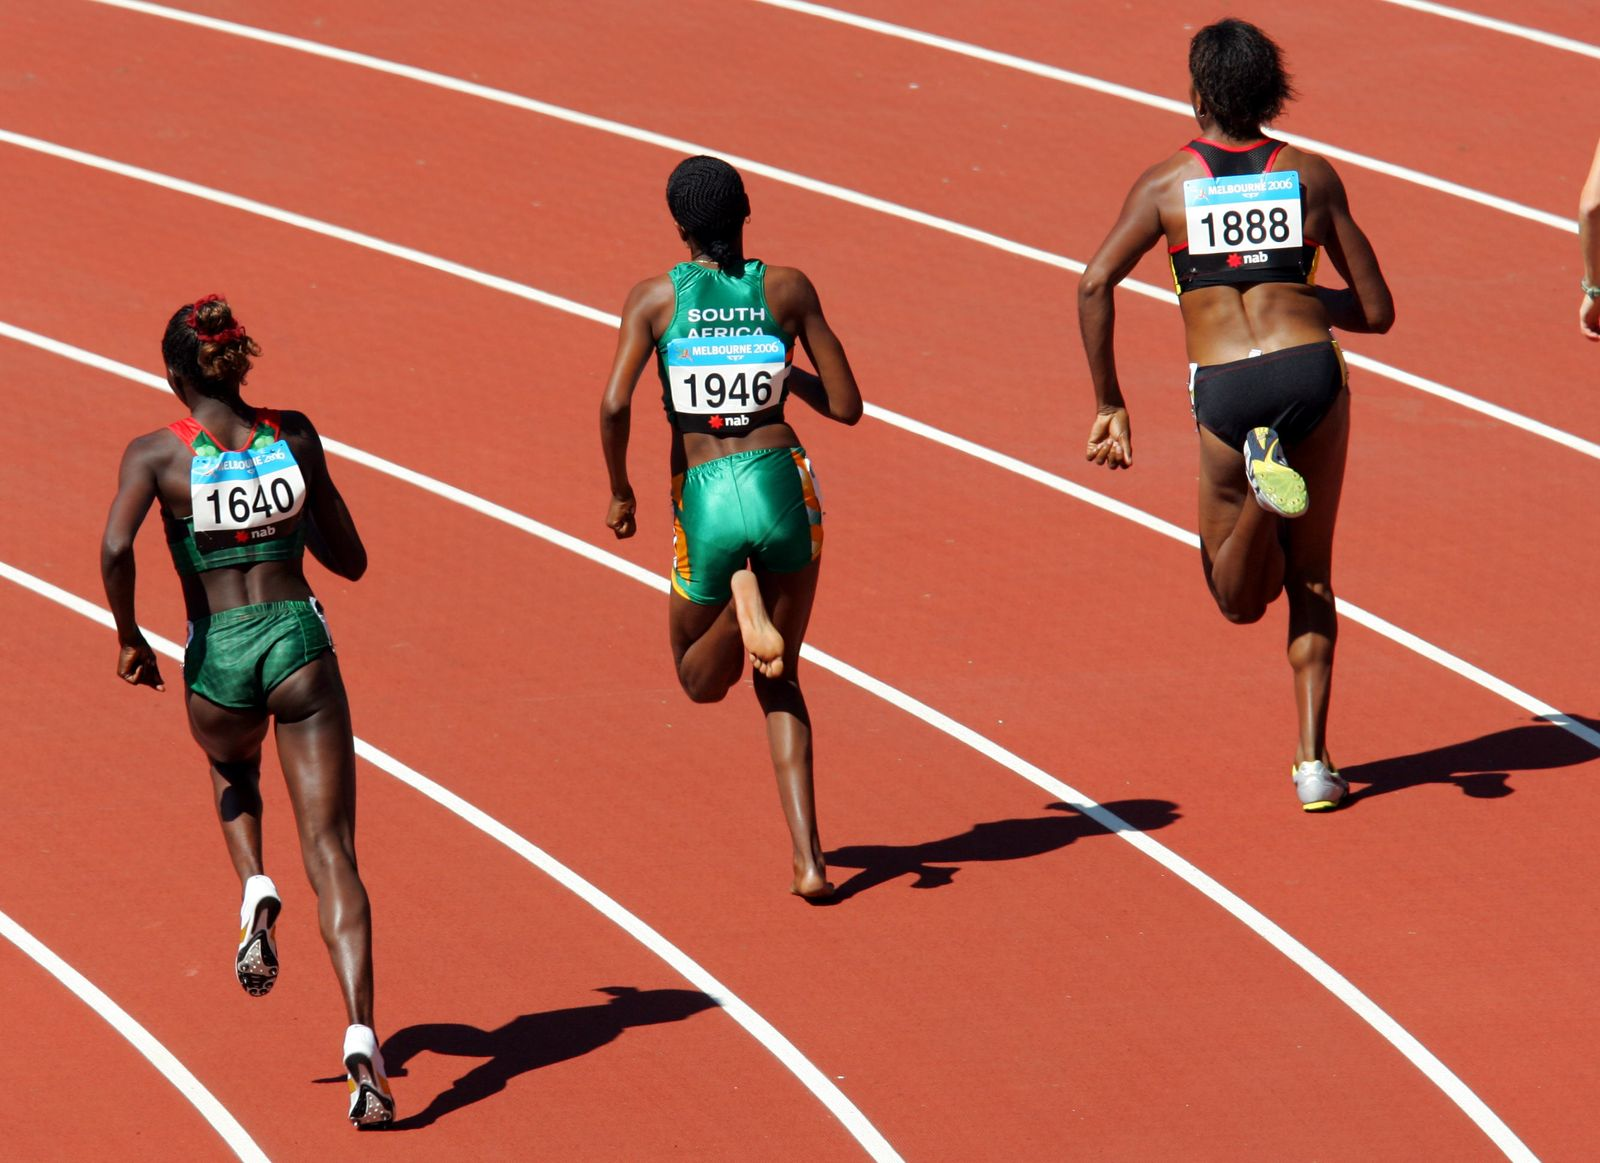 Commonwealth Games 2006. South Africa's Lebogang Phalula, centre, competed in ba